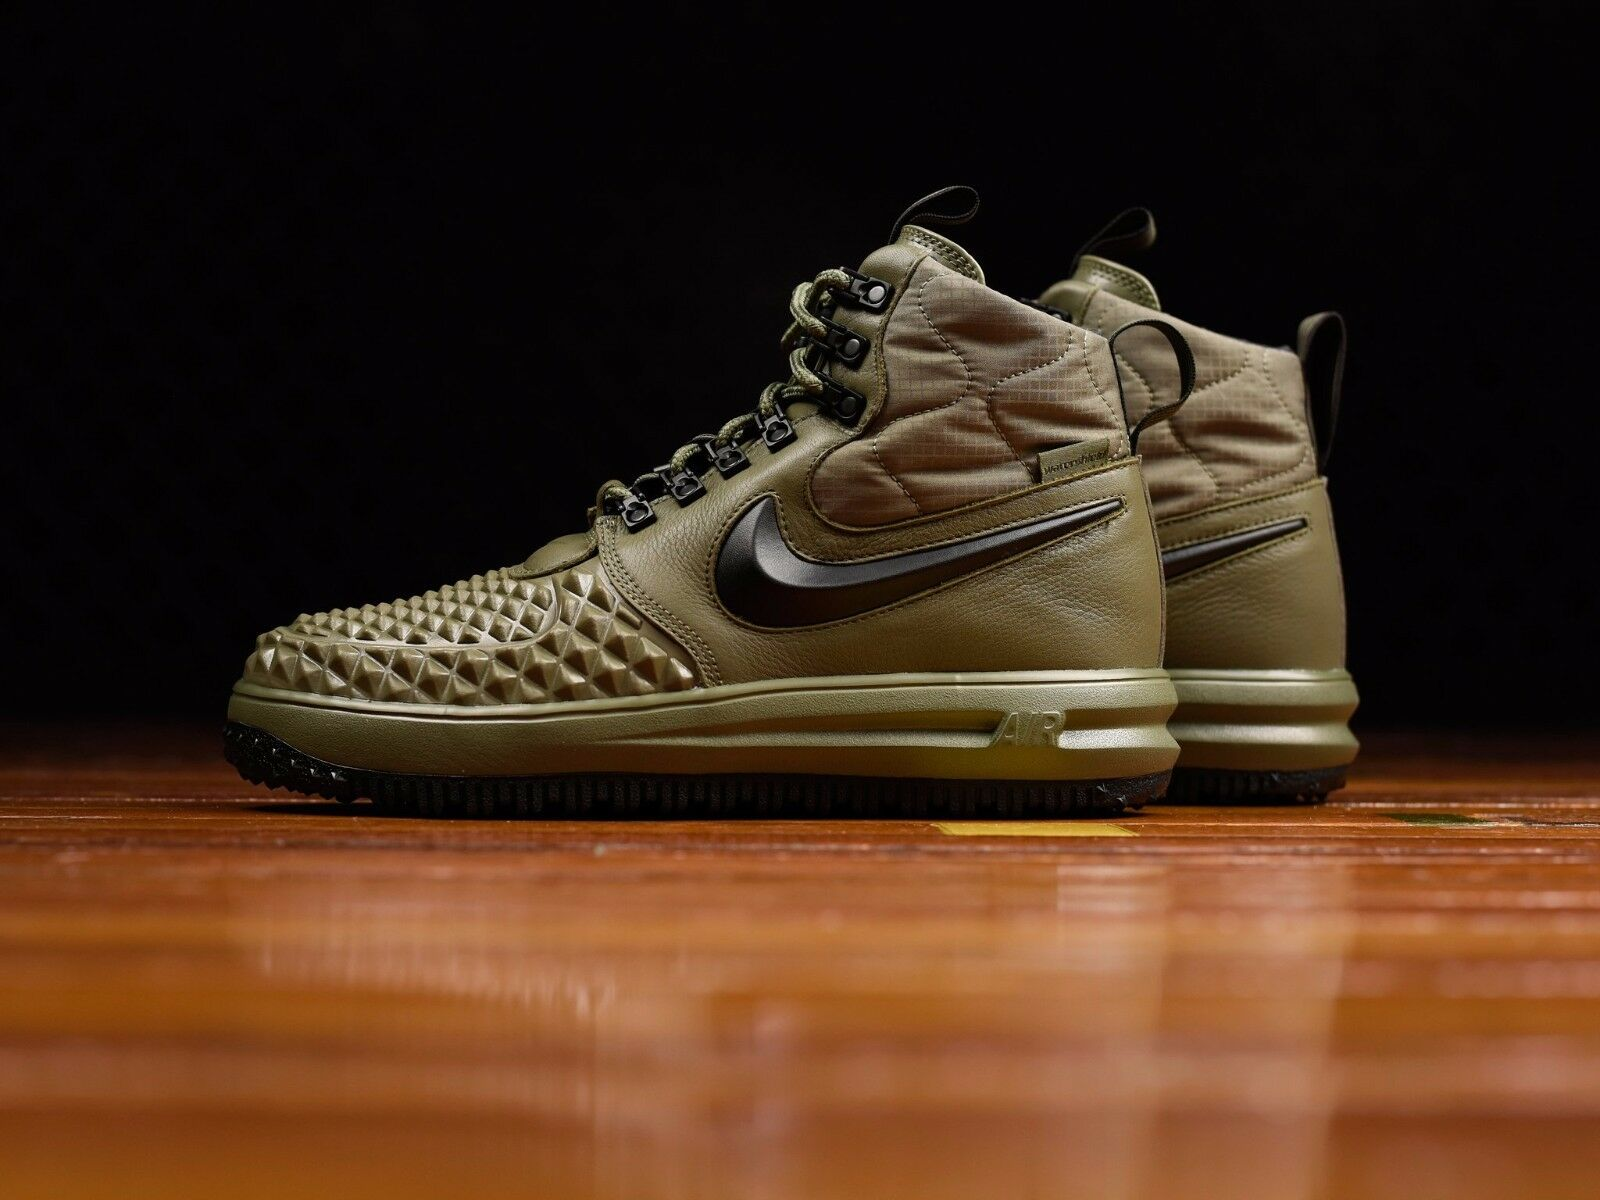 Nike lunar vigore 1 duck boot